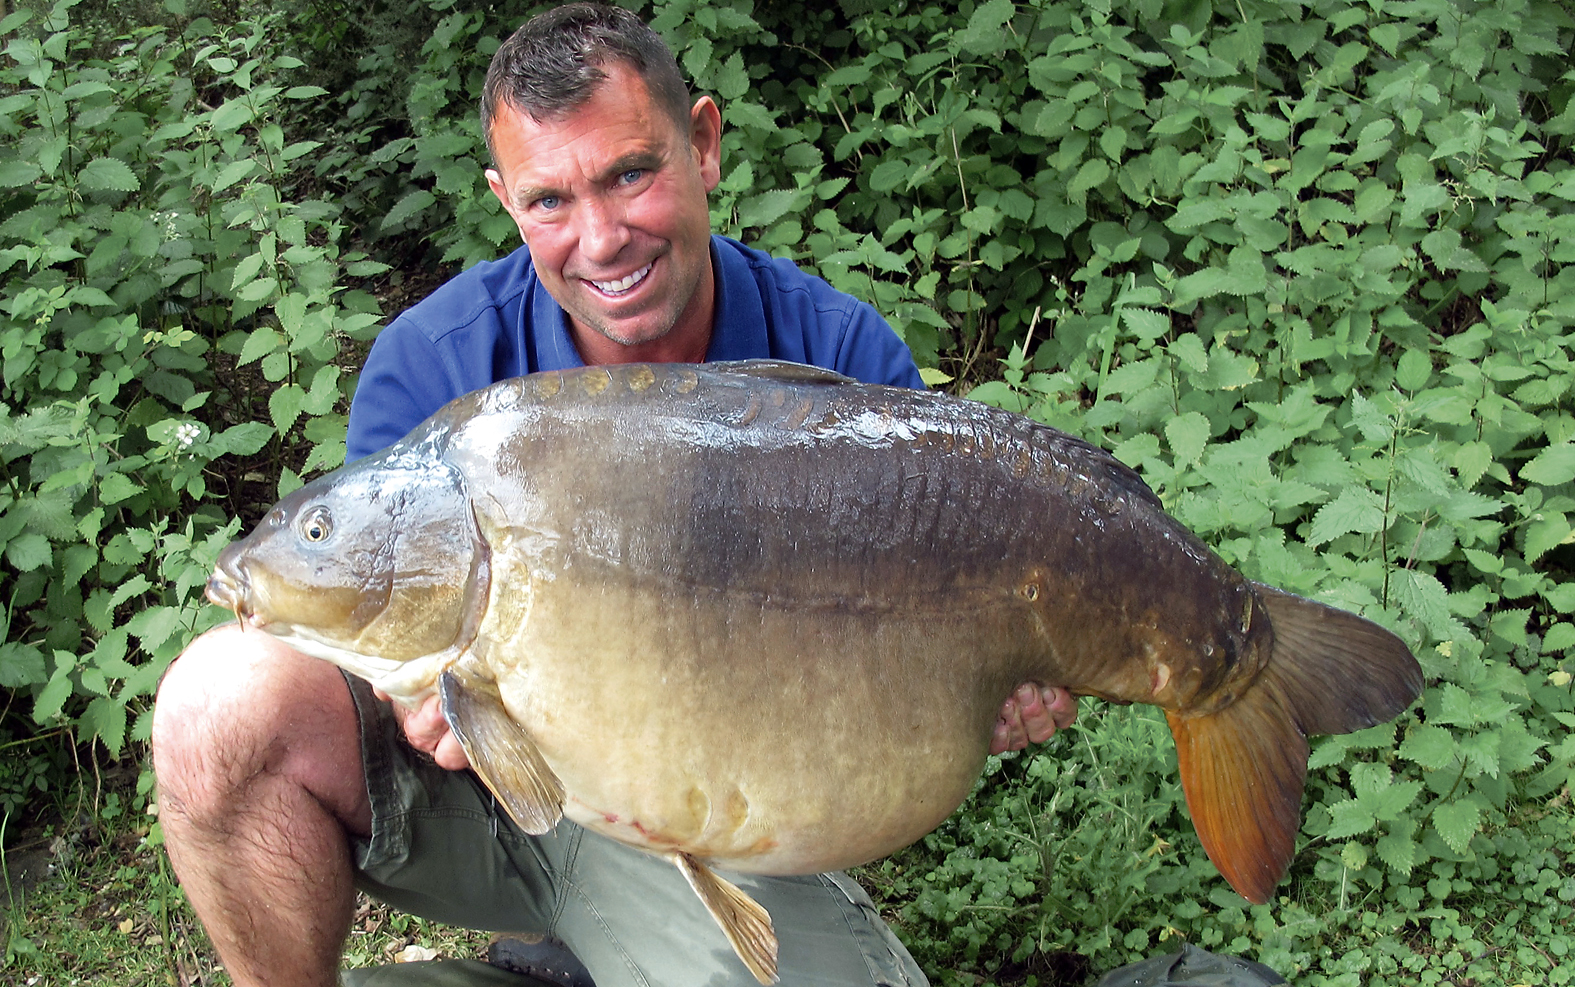 Jerry Hammond finally has the big 'un on the bank, but it wasn't easy!